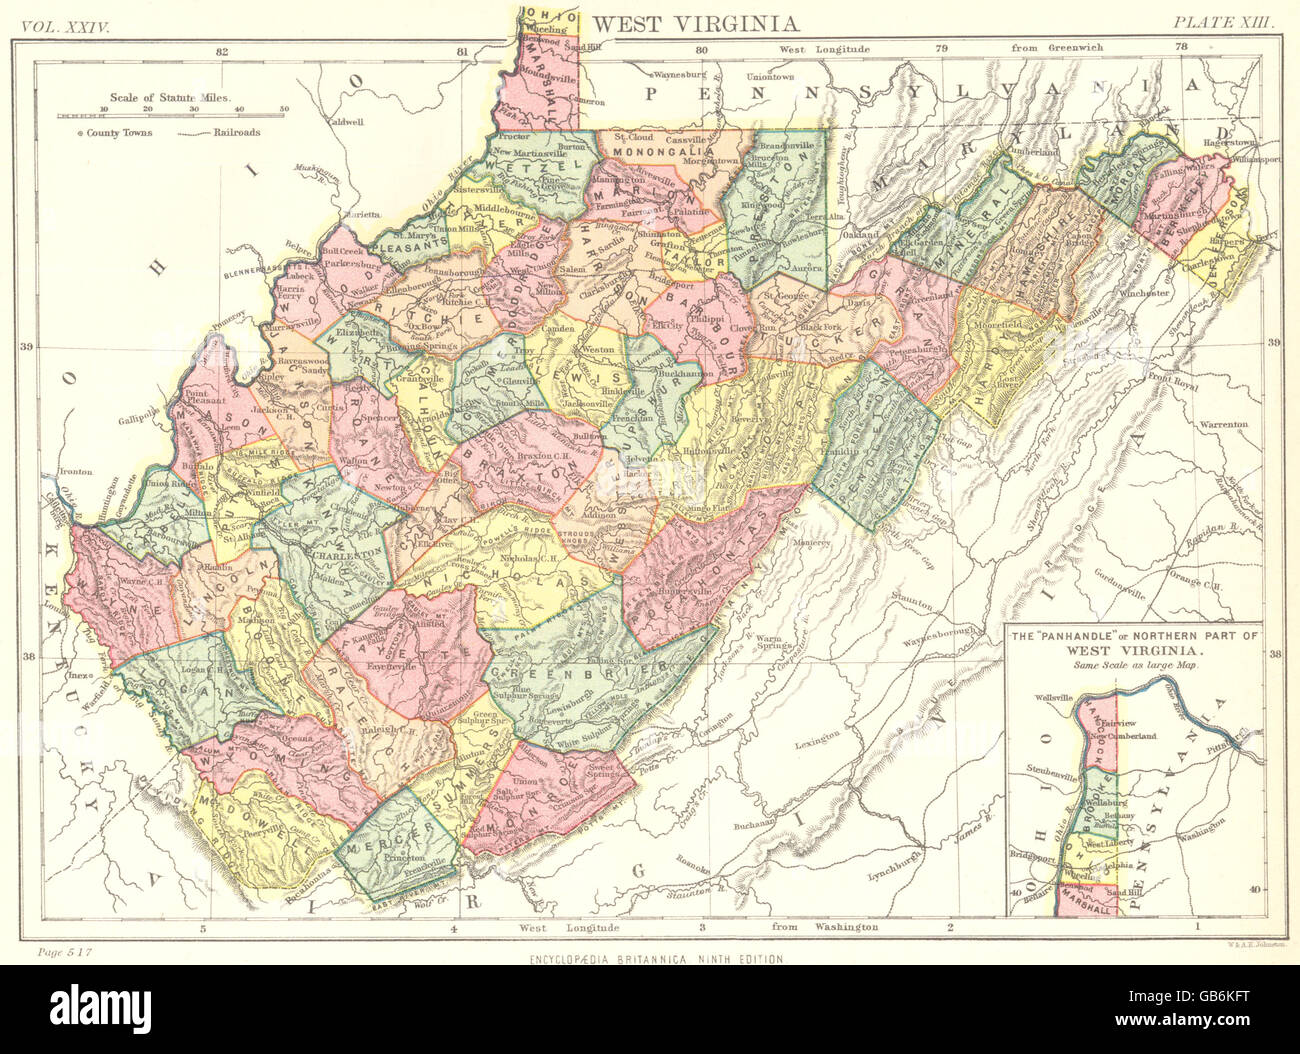 WEST VIRGINIA State Map Showing Counties Britannica Th Edition - Virginia state map